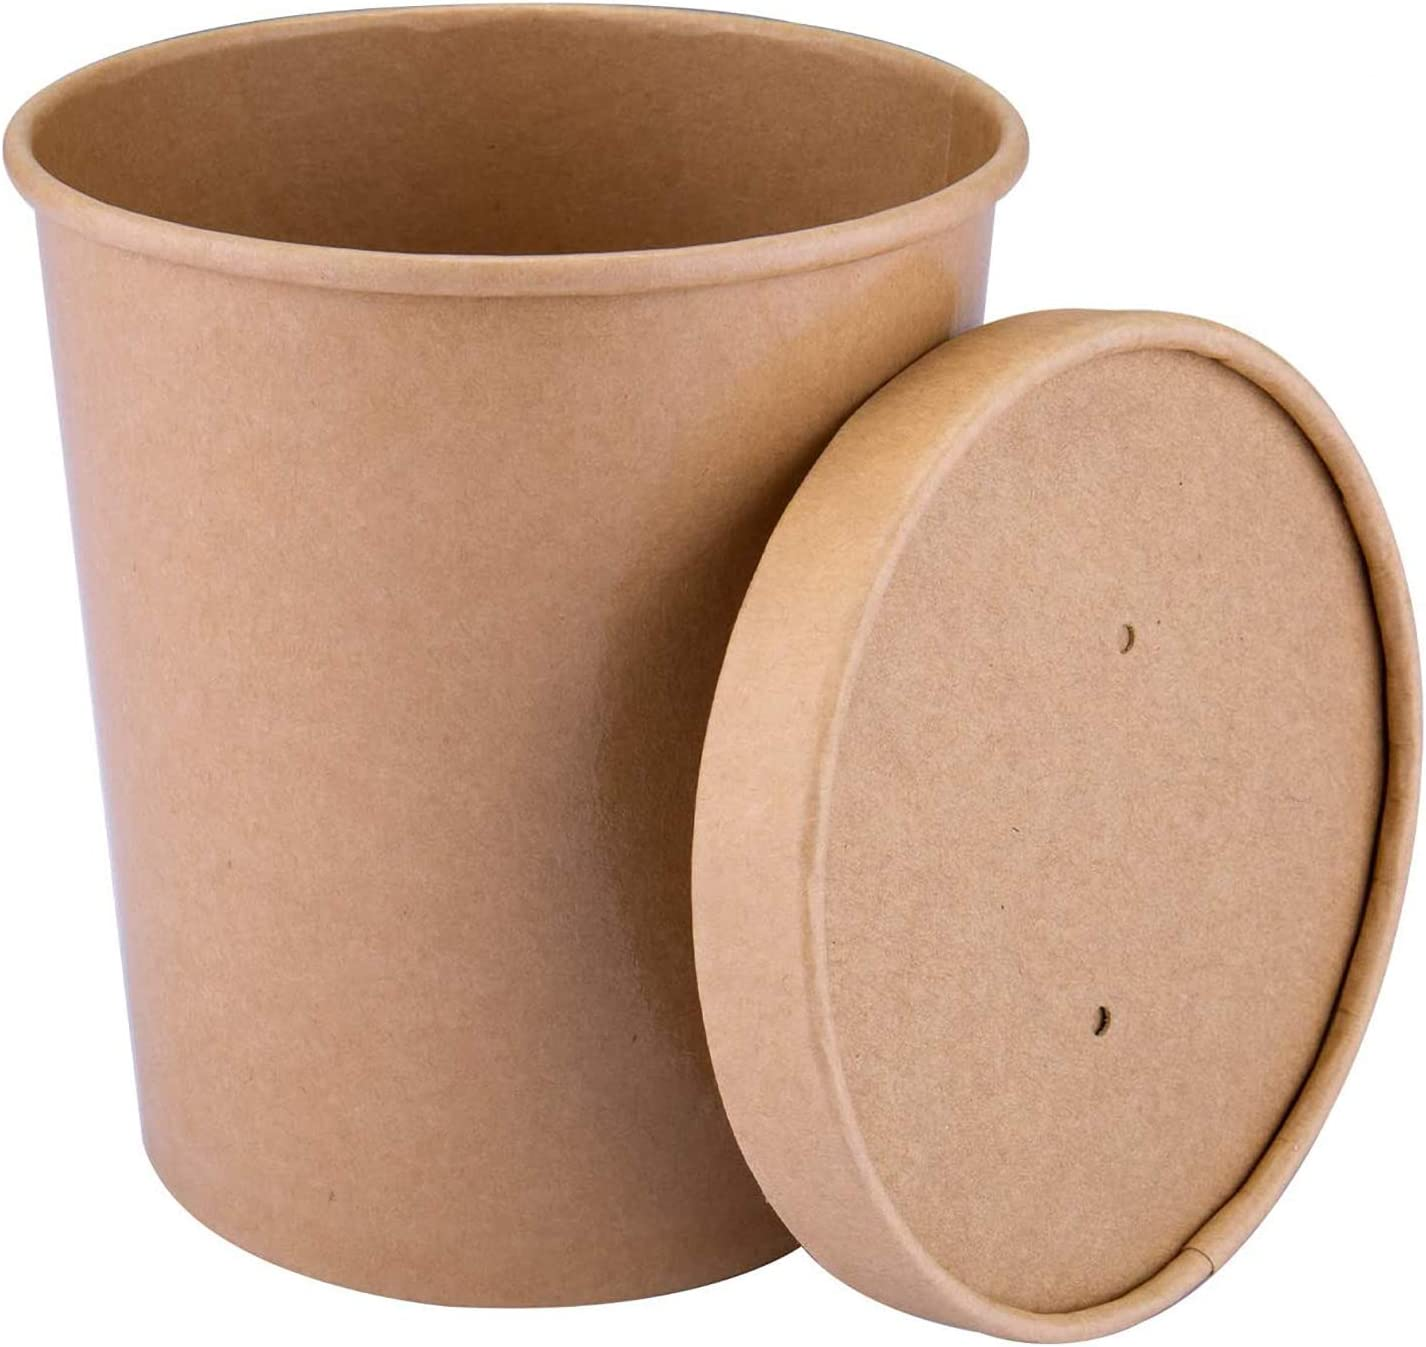 TKOOFN Disposable Kraft Paper Food Containers with Vented Lids Perfect for Ice Cream, Soup, Take Out, 32 Ounce, 25 Pack